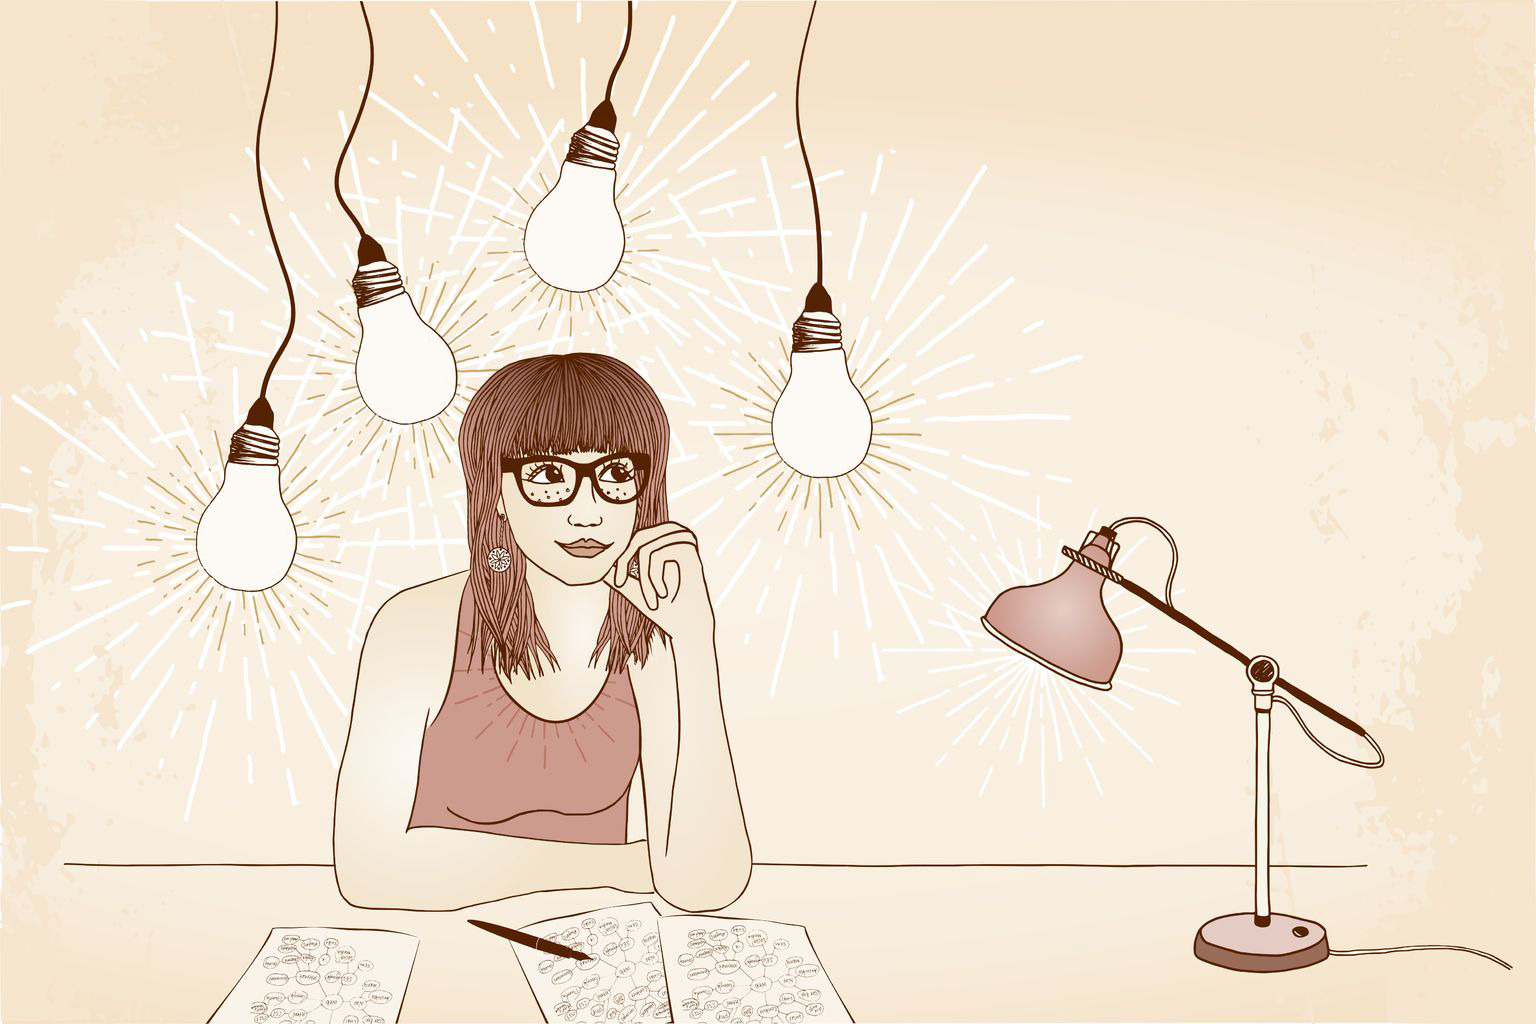 48042947 - hand drawn illustration of a young woman with glasses, thinking and imagining new and innovative ideas